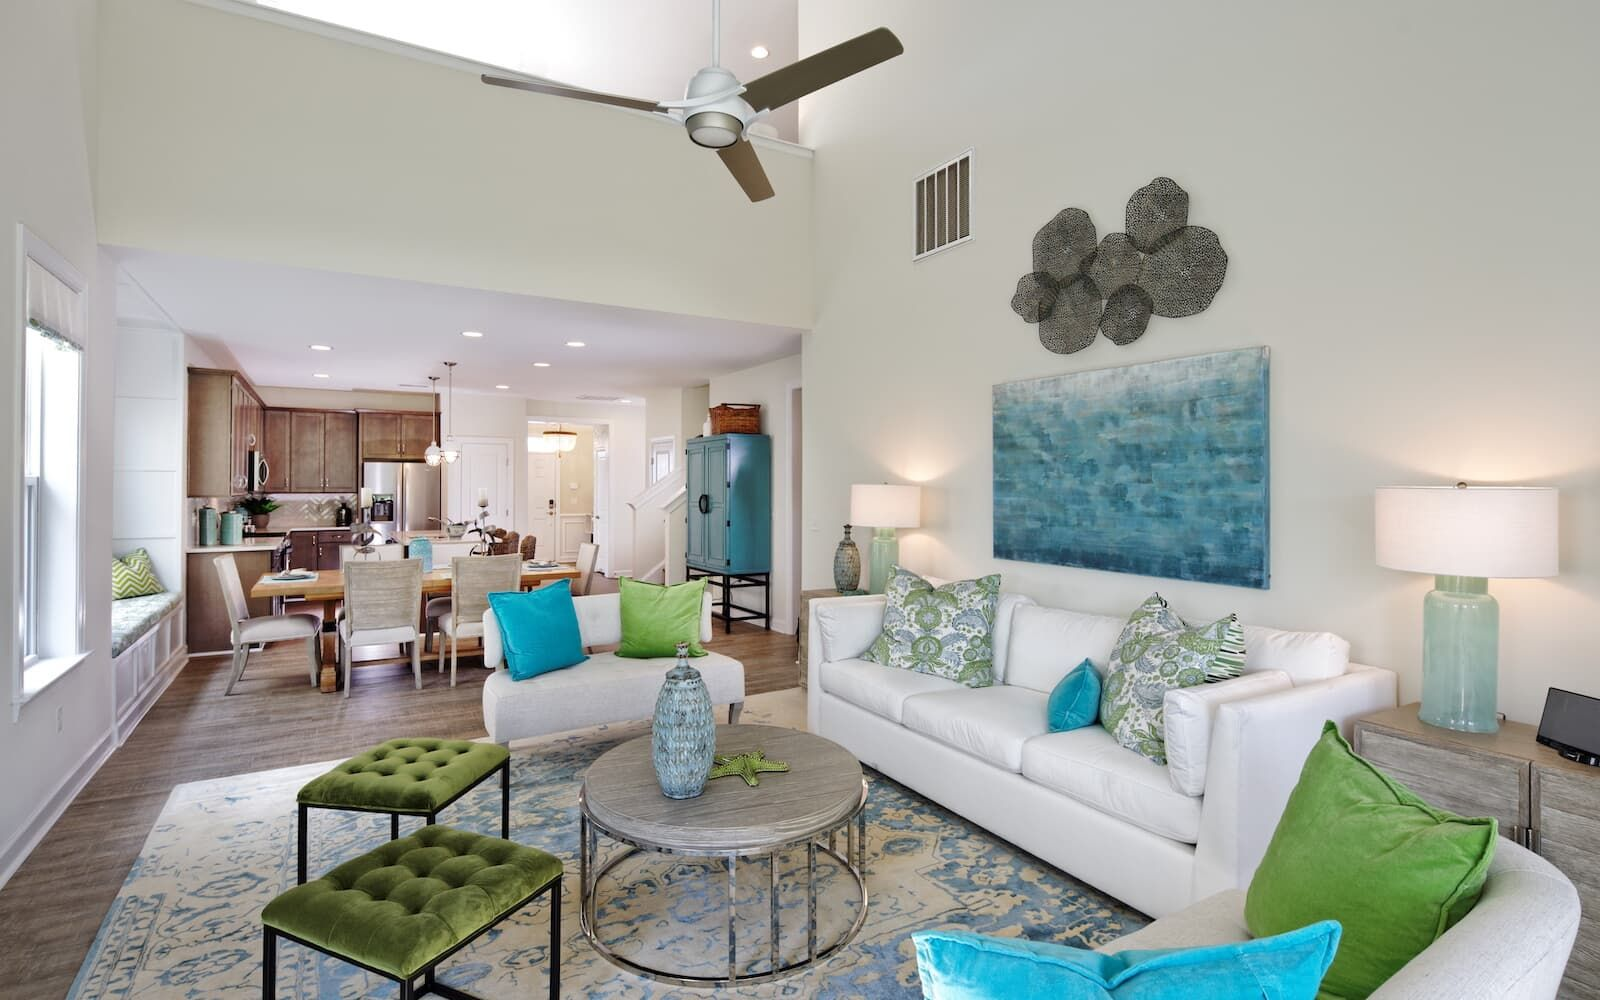 '55+ Lifestyle at Two Rivers' by Brookfield Residential-Anne Arundel County in Baltimore